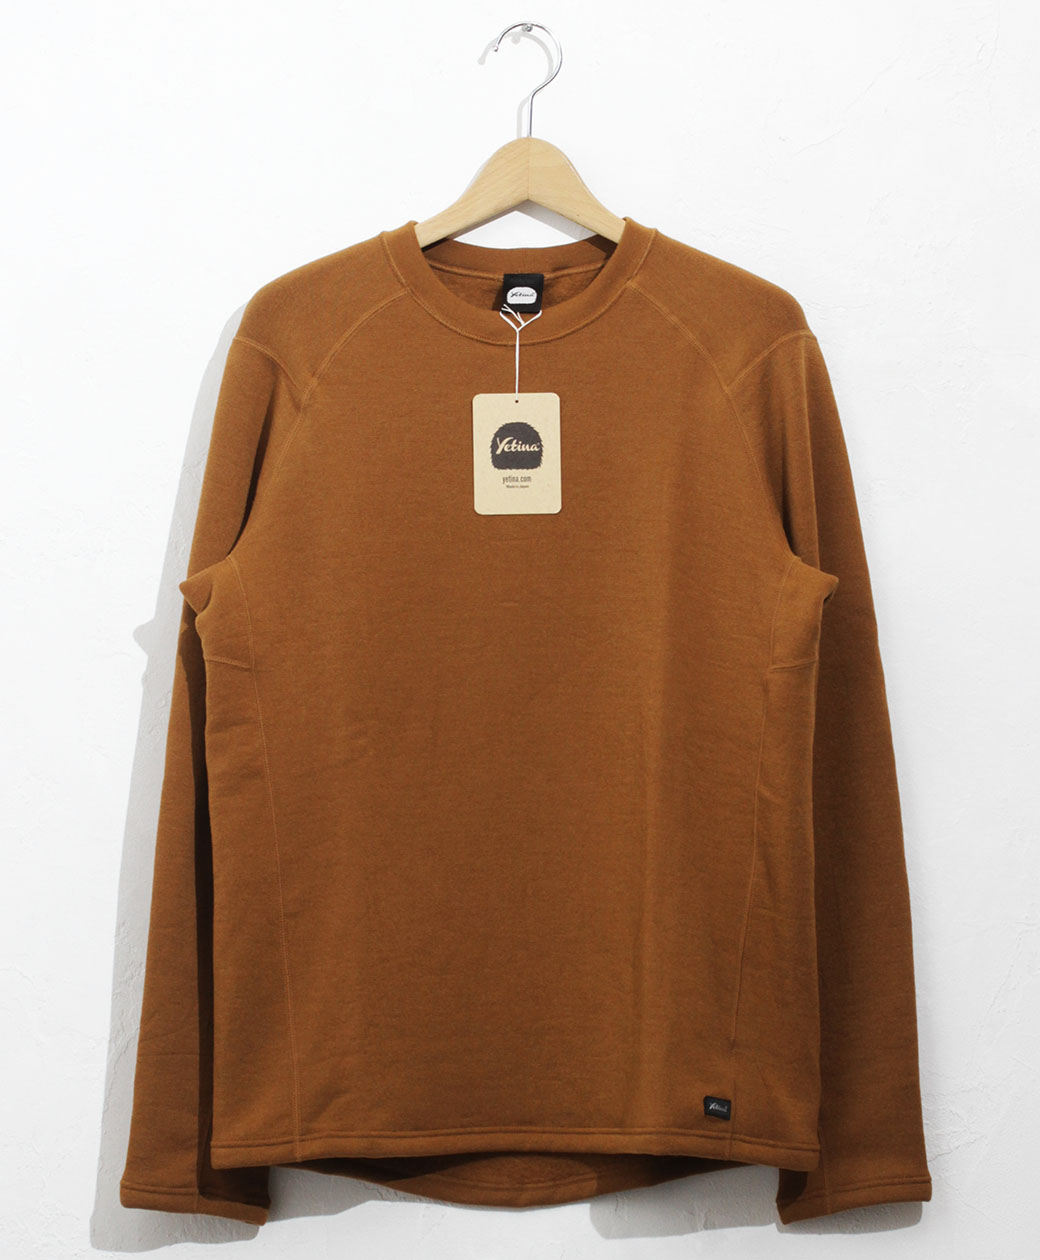 yetina light crew neck(orange brown)